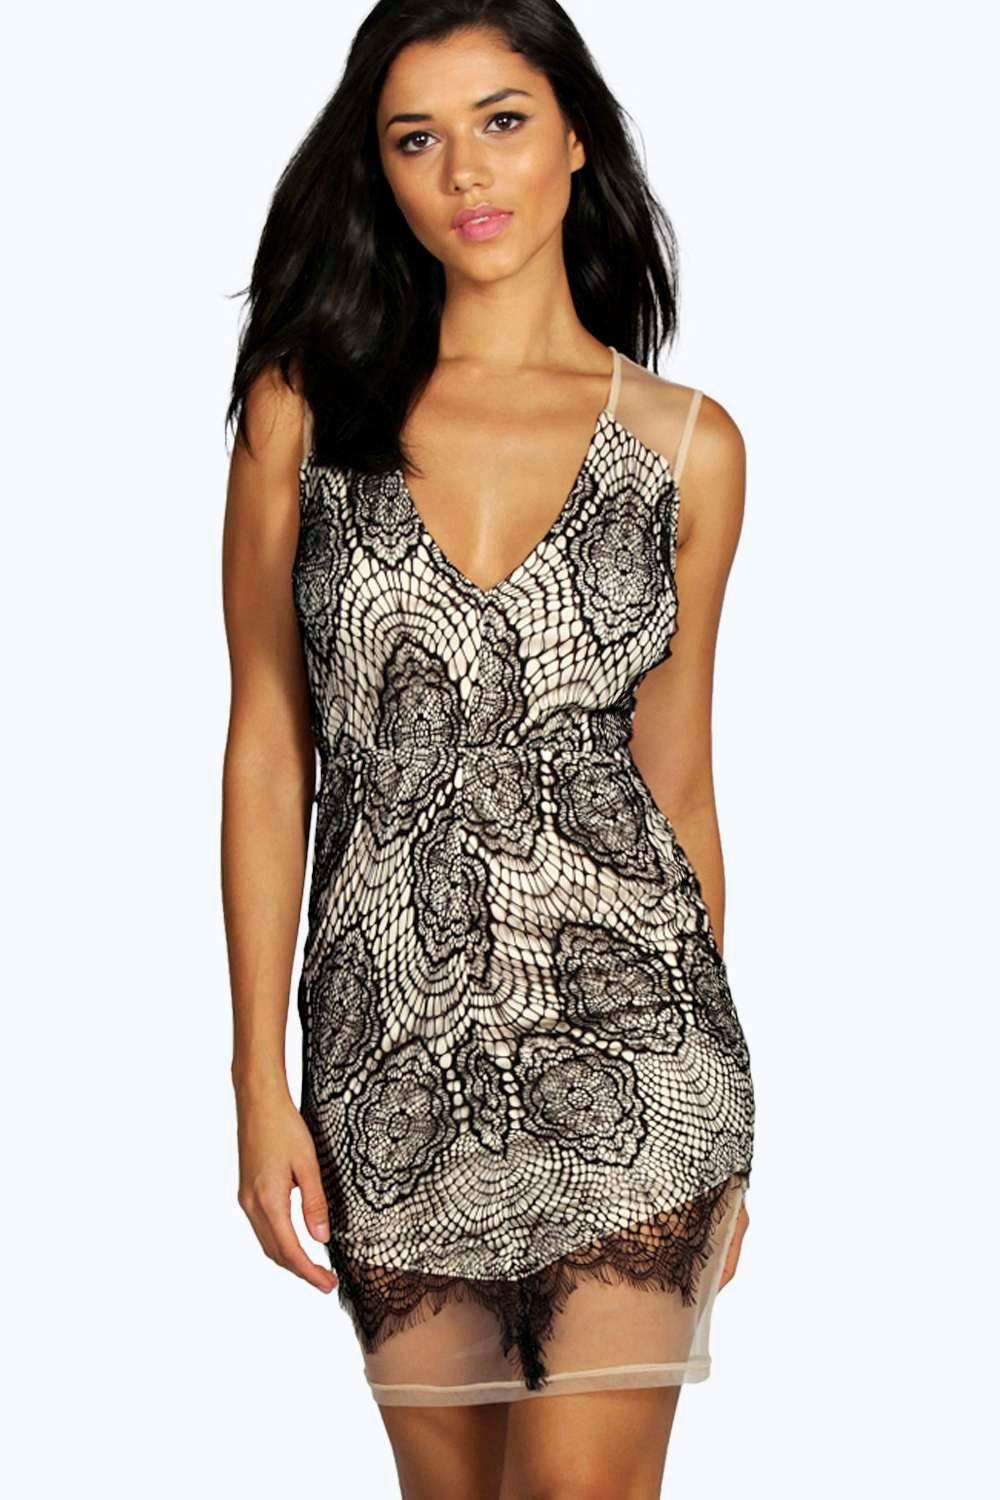 Lace and based bodycon dress